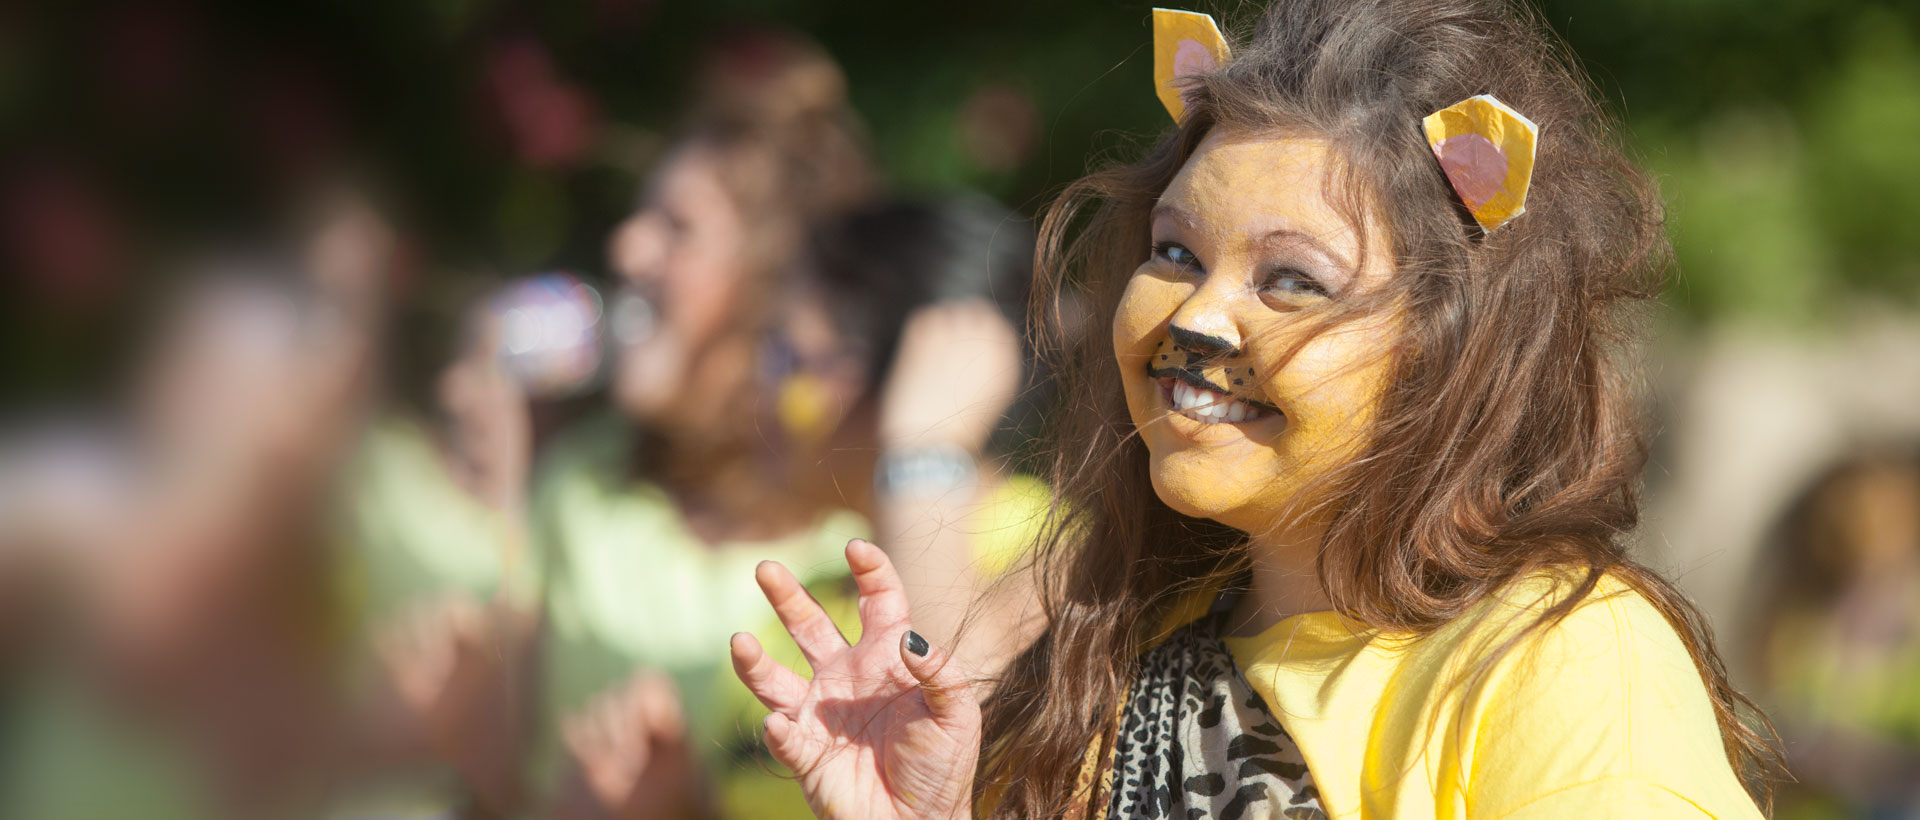 Girl's face painted as Lion mascot